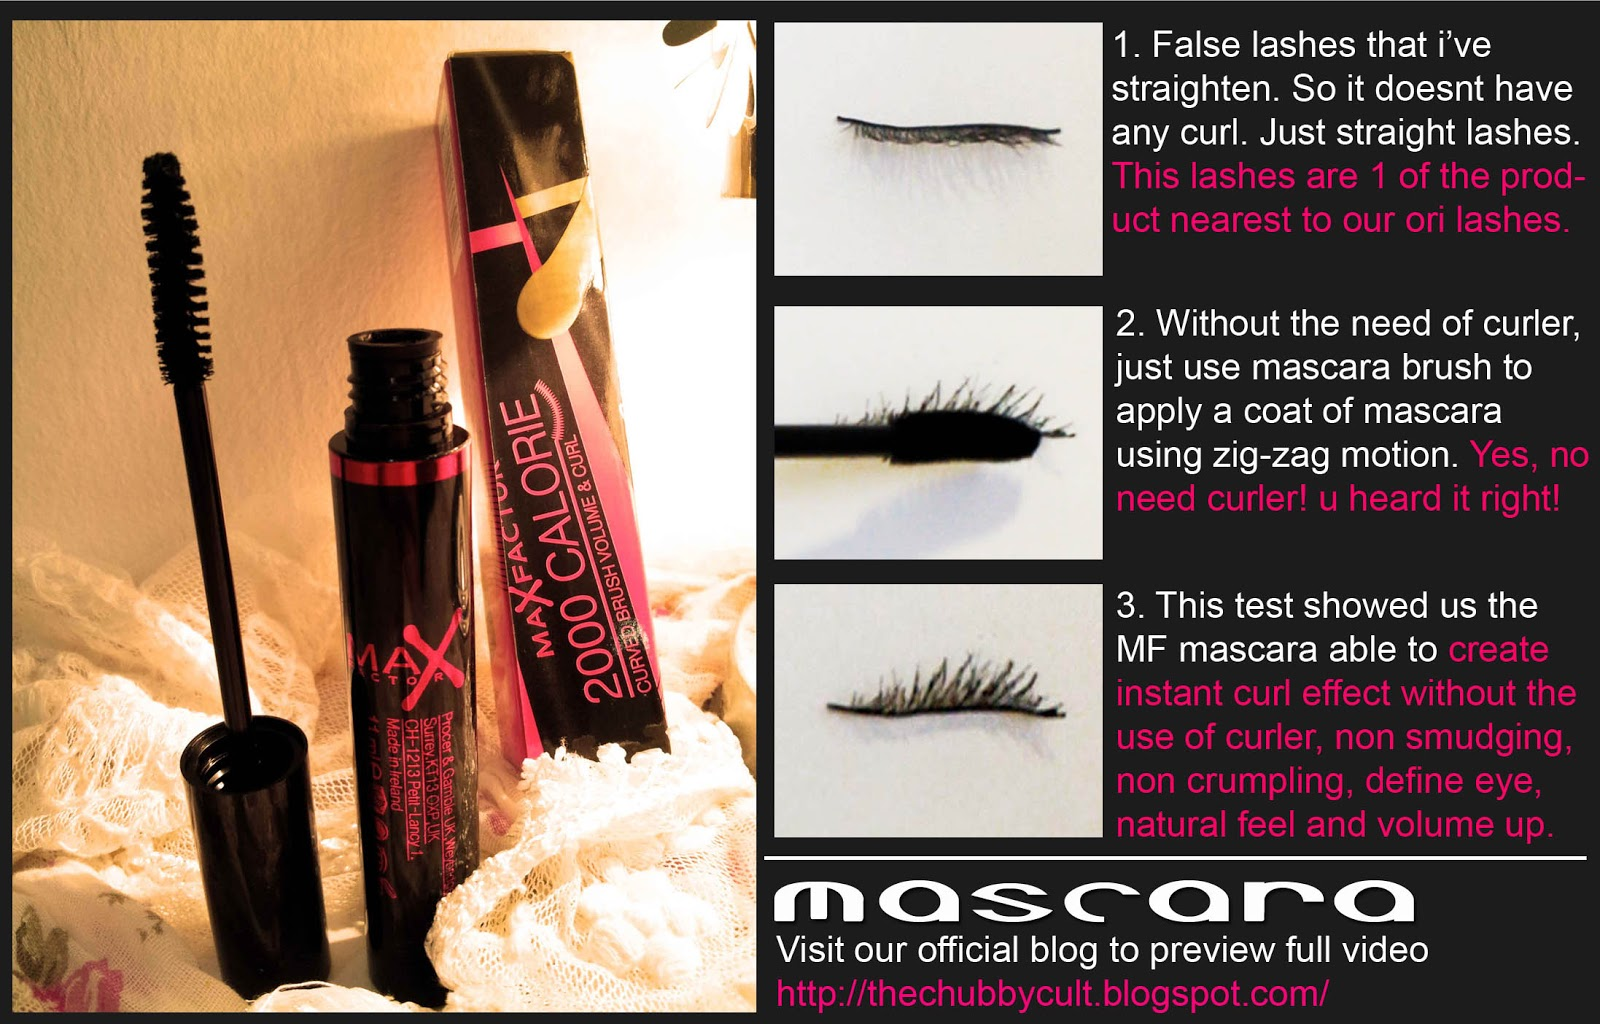 486ef199abf So if dream of a natural yet define lashes, just use this mascara. ♥ MAX  FACTOR 2000 CALORIE ...